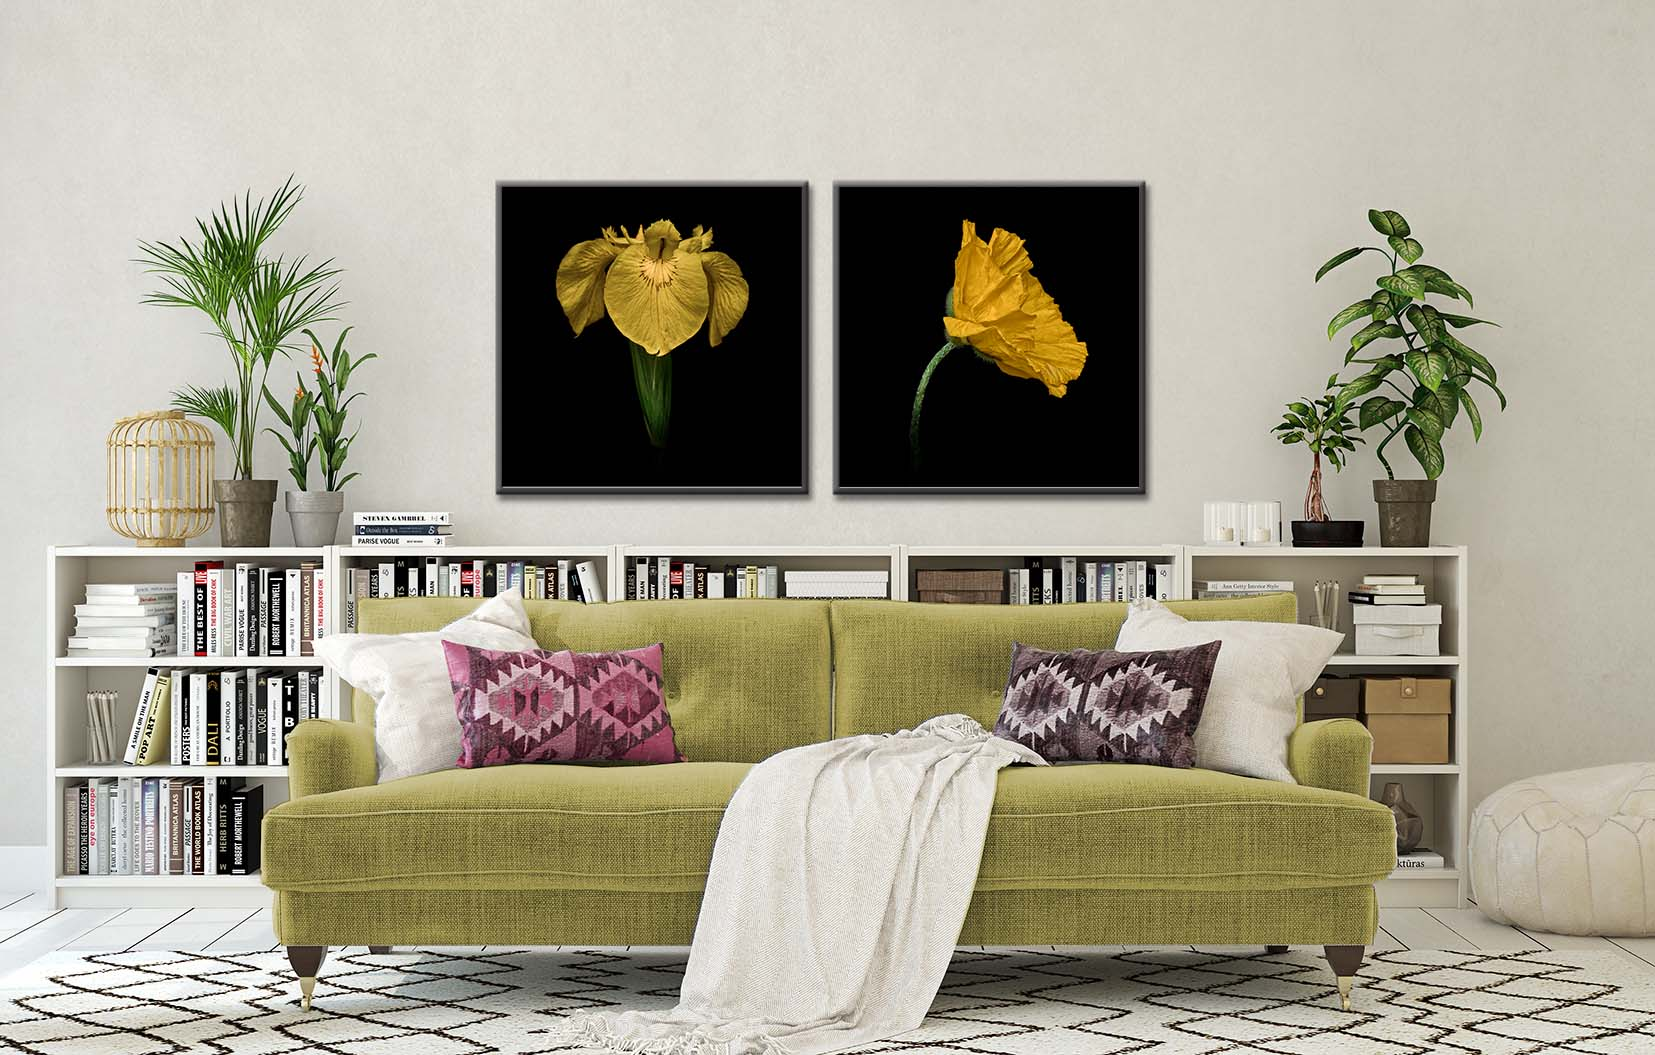 Colour photographic art prints of a yellow iris and yellow poppy on a black background. Fine art, limited edition floral prints by award-winning photographer Paul Coghlin FBIPP.